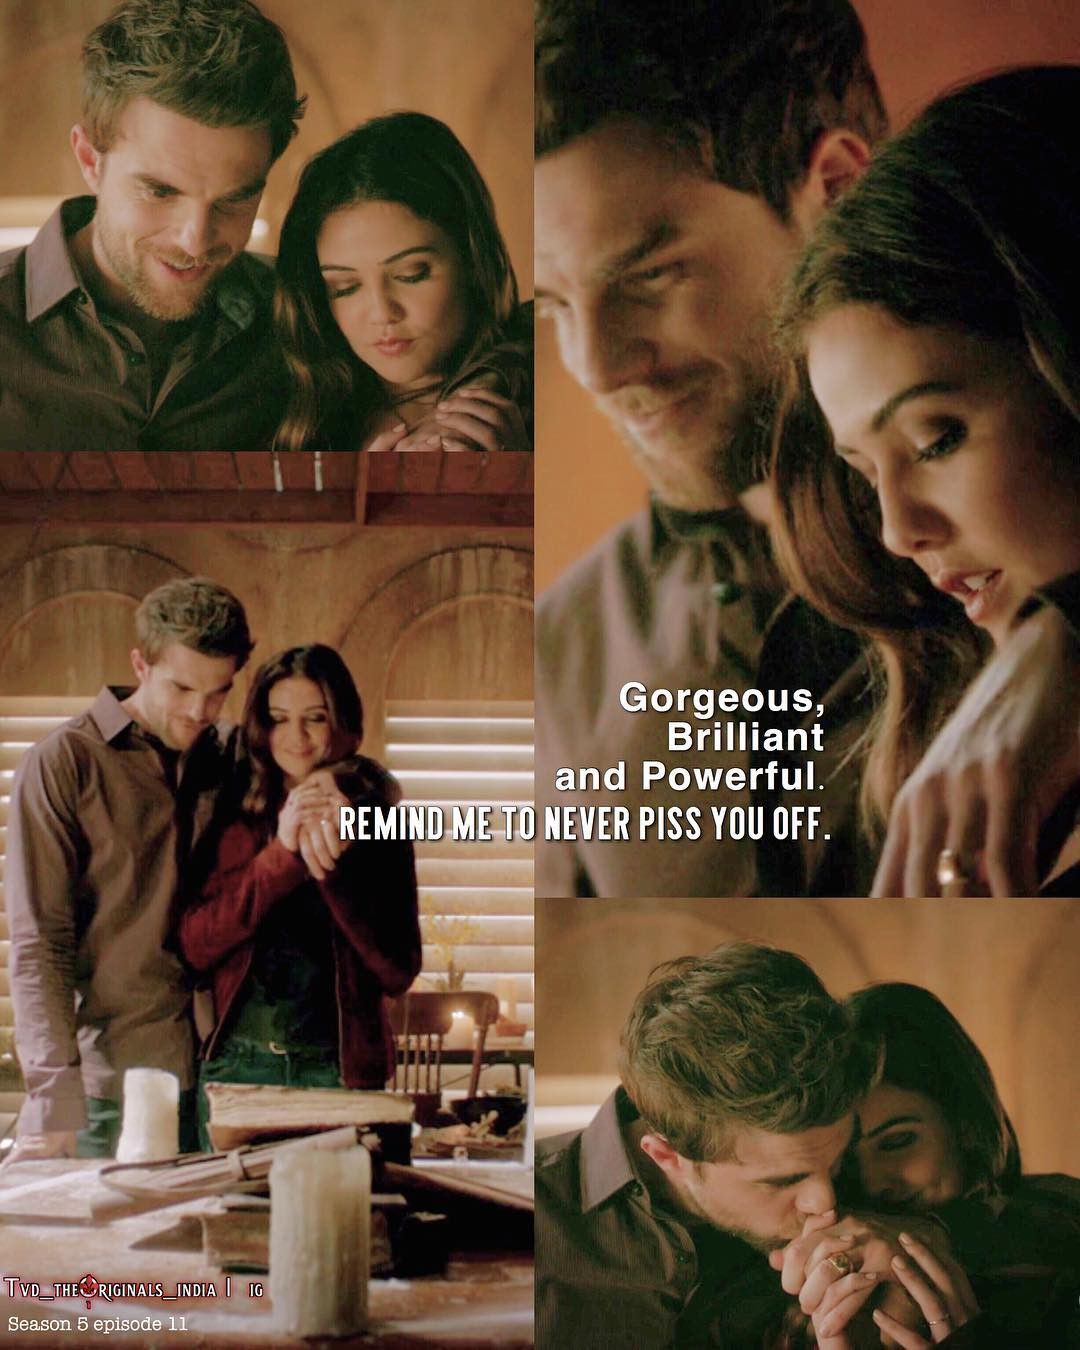 I love them together | Mikaelsons & More | Vampire diaries